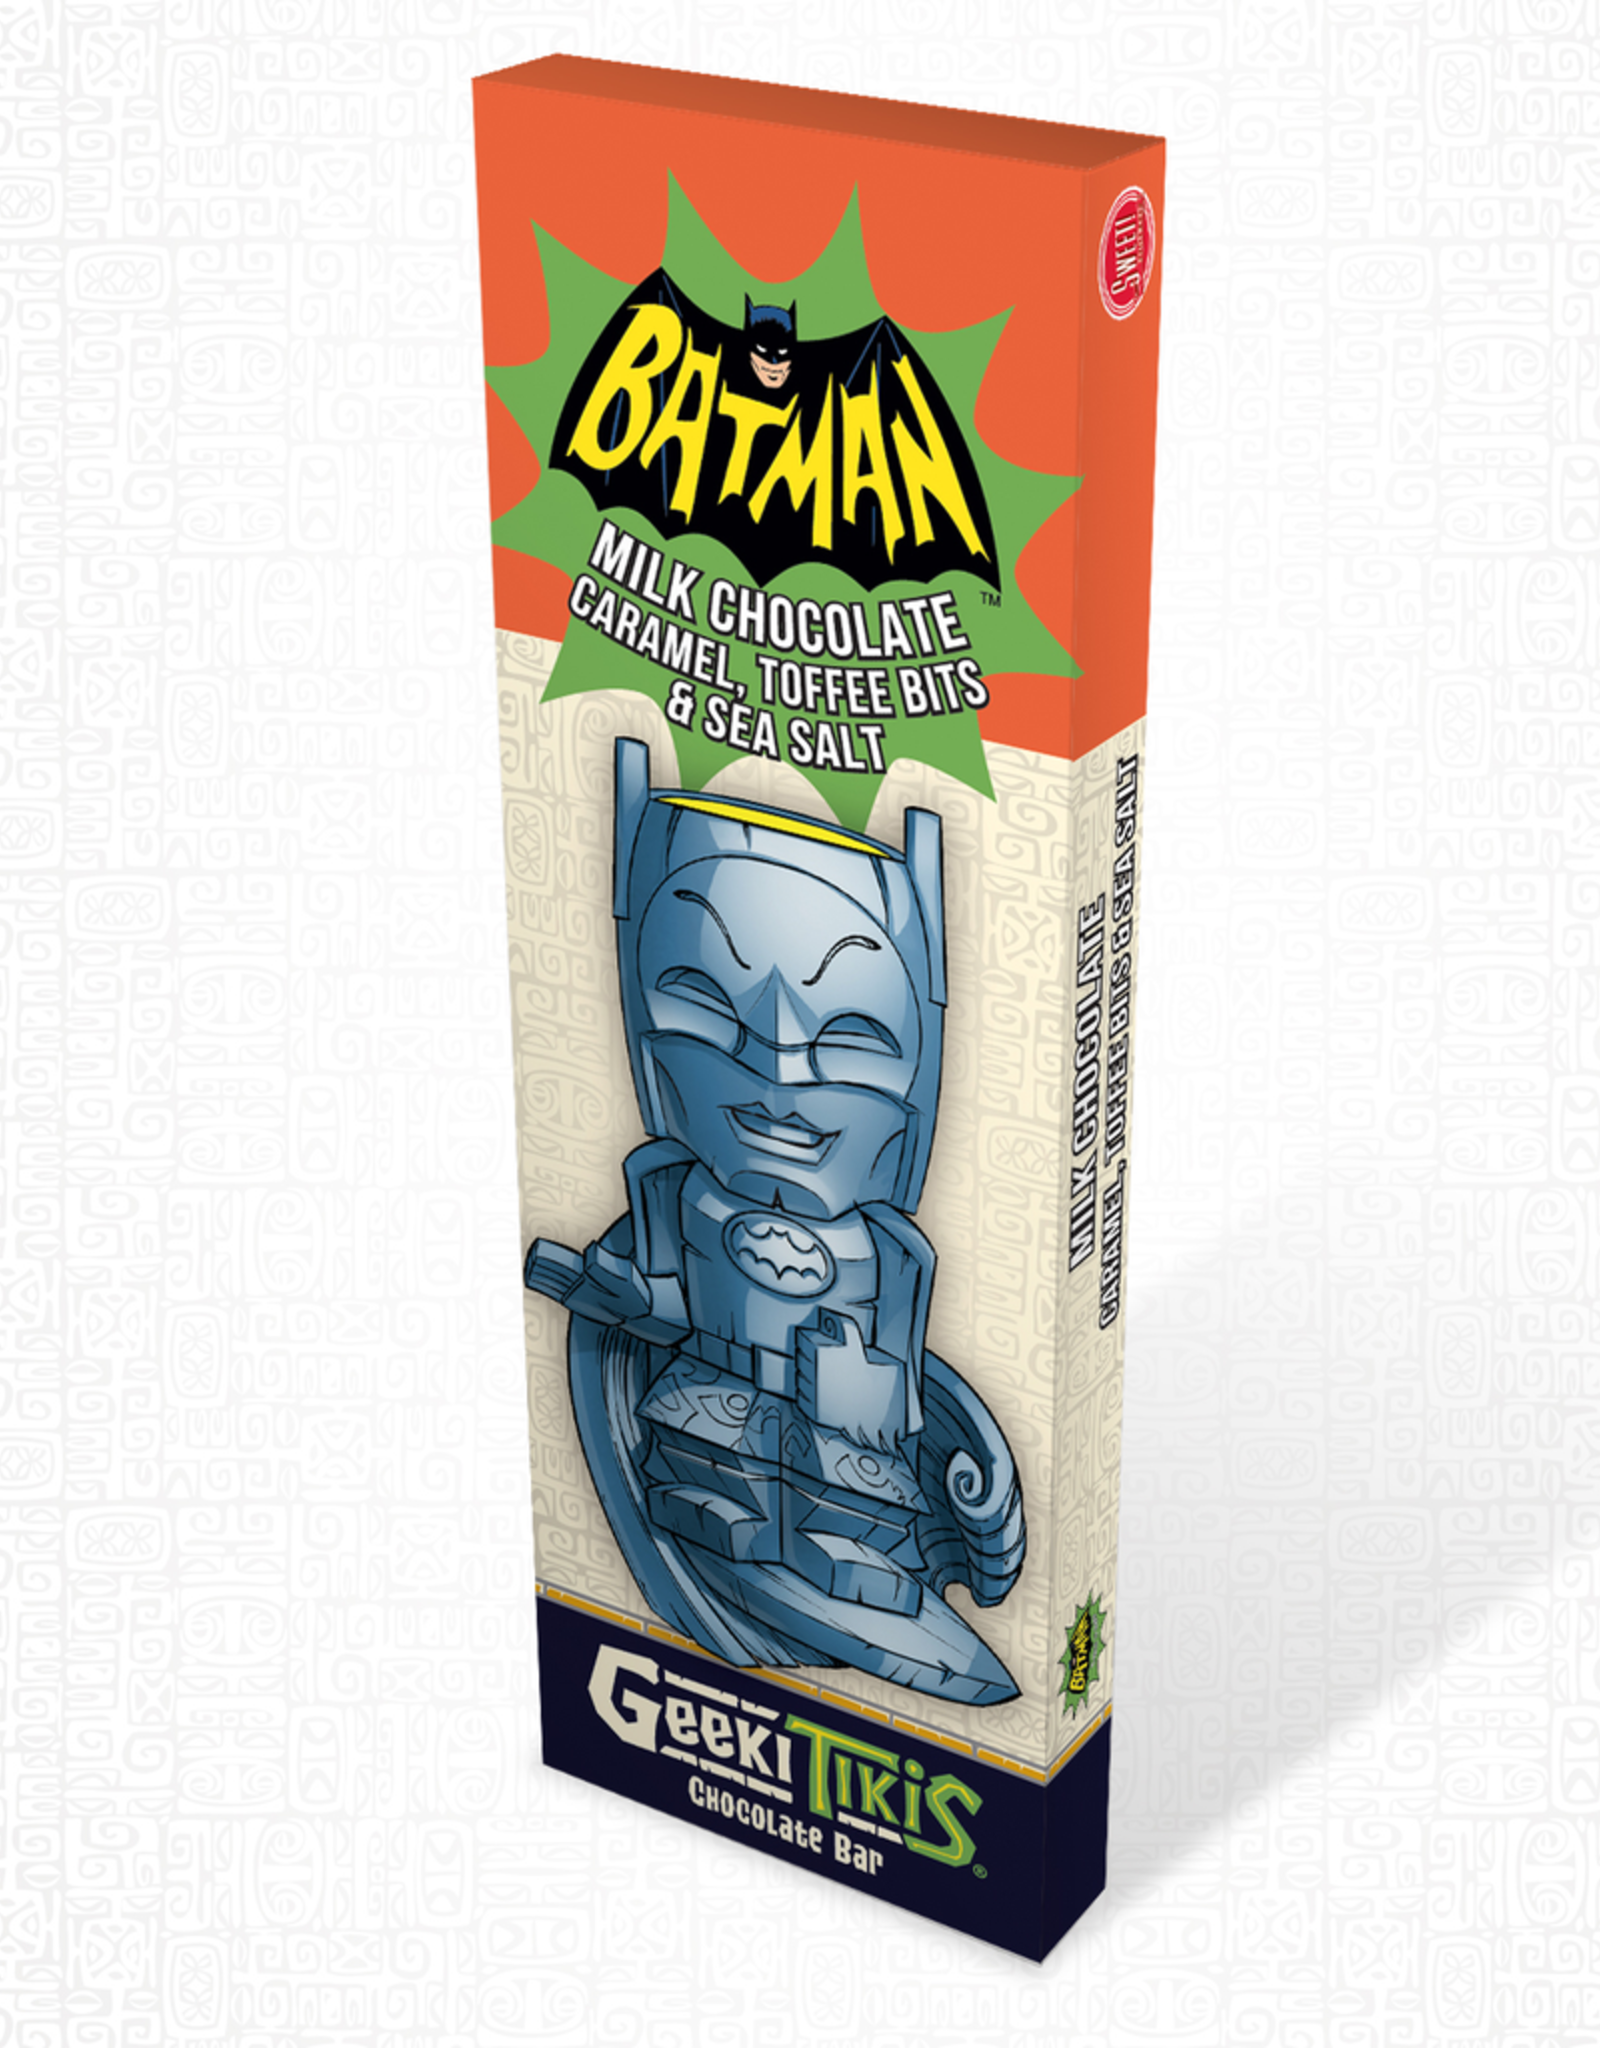 DC Comics Geeki Tikis Batman 66 - Batman Chocolate Bar Milk Chocolate, Caramel, Toffee Bits, & Sea Salt